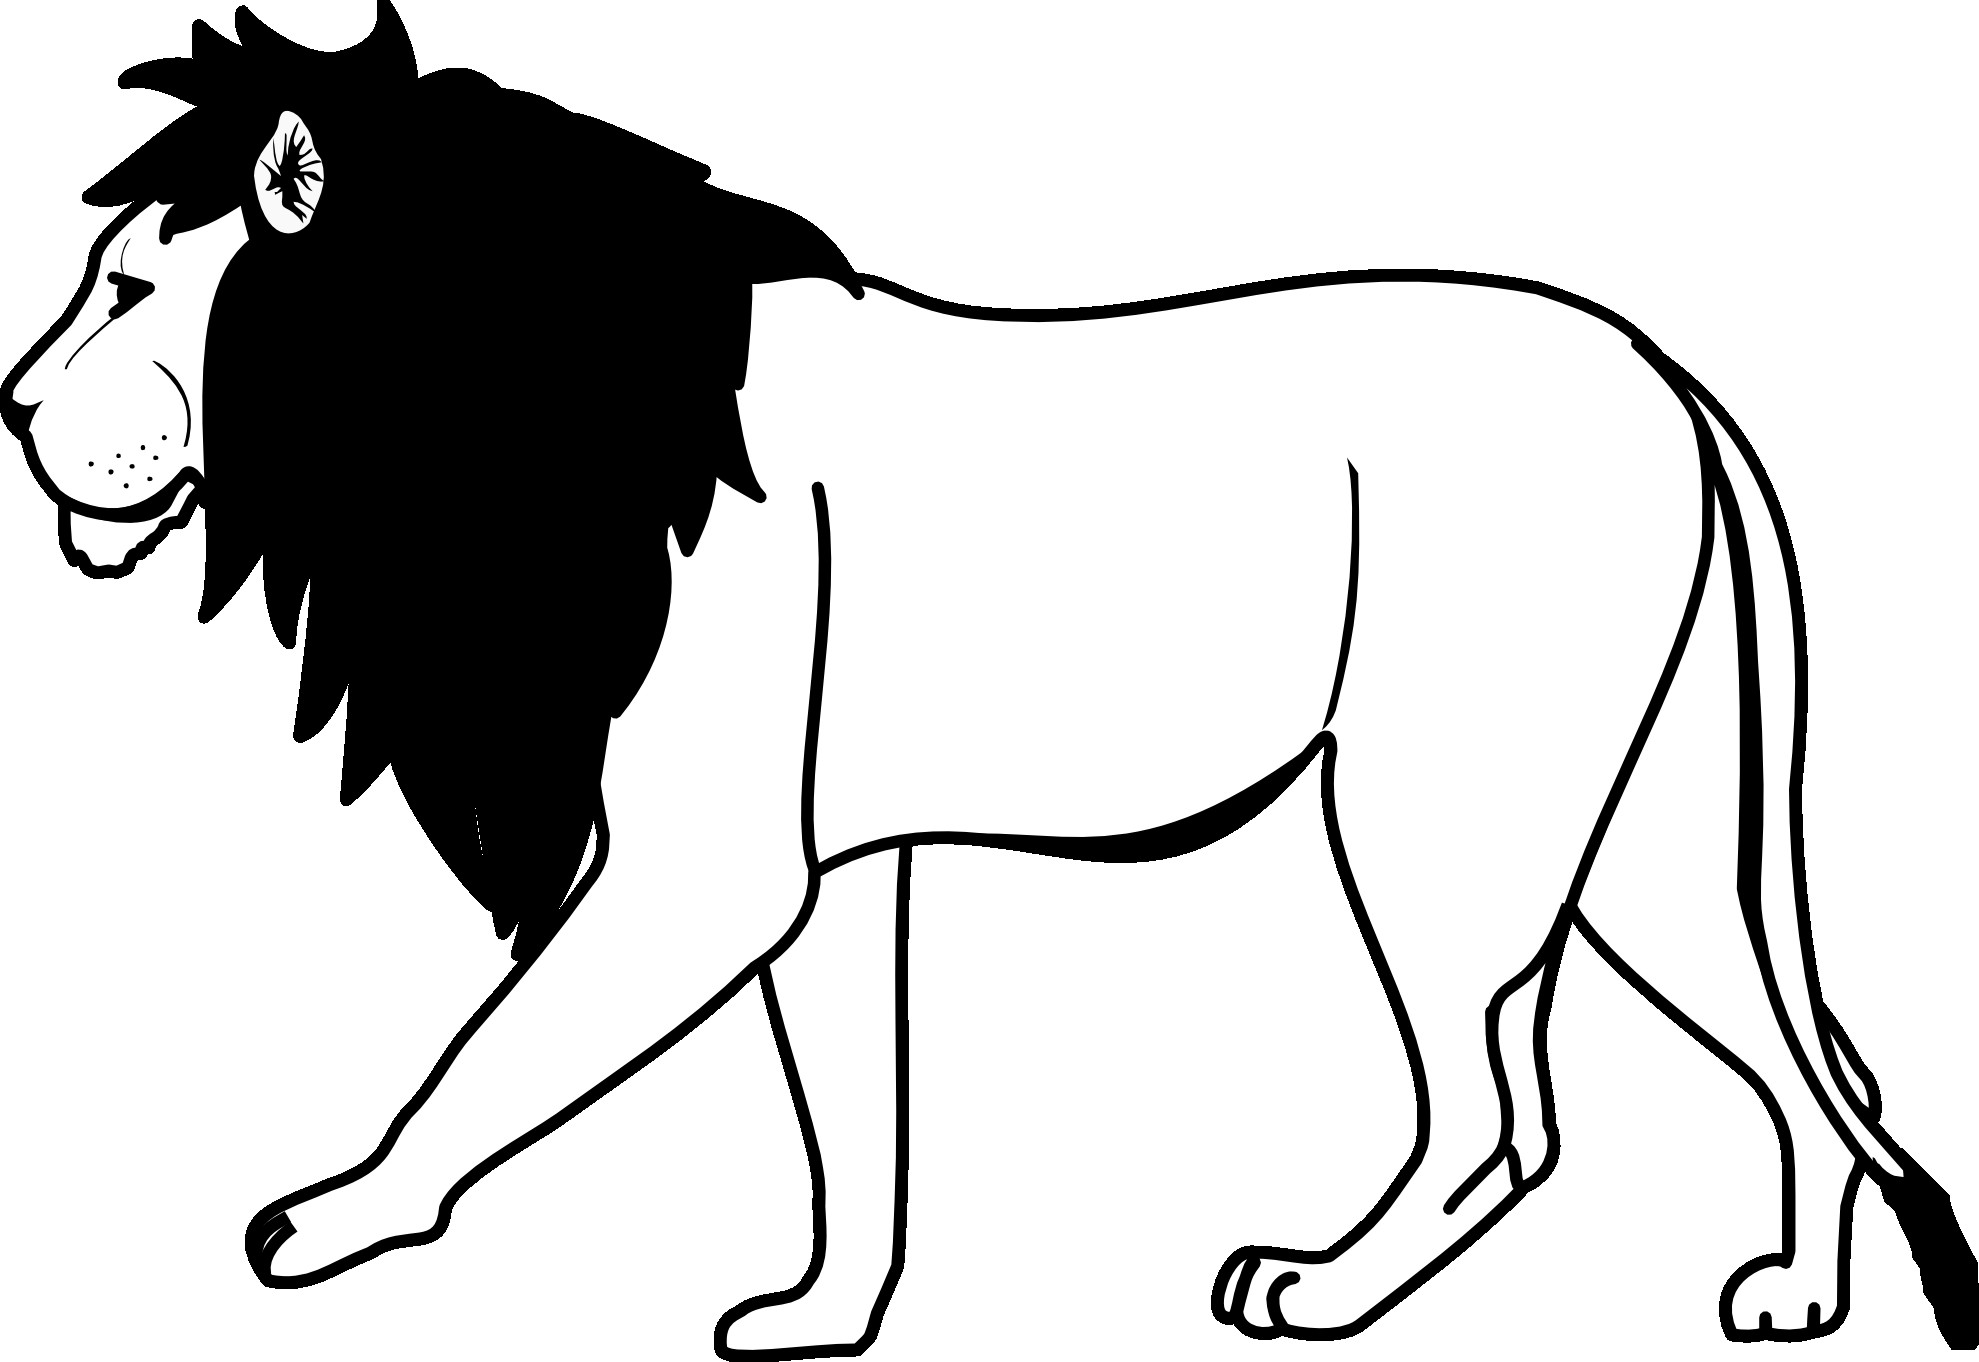 Outline Of A Lion White Lion Clipart Lion Outline Pencil and In Color